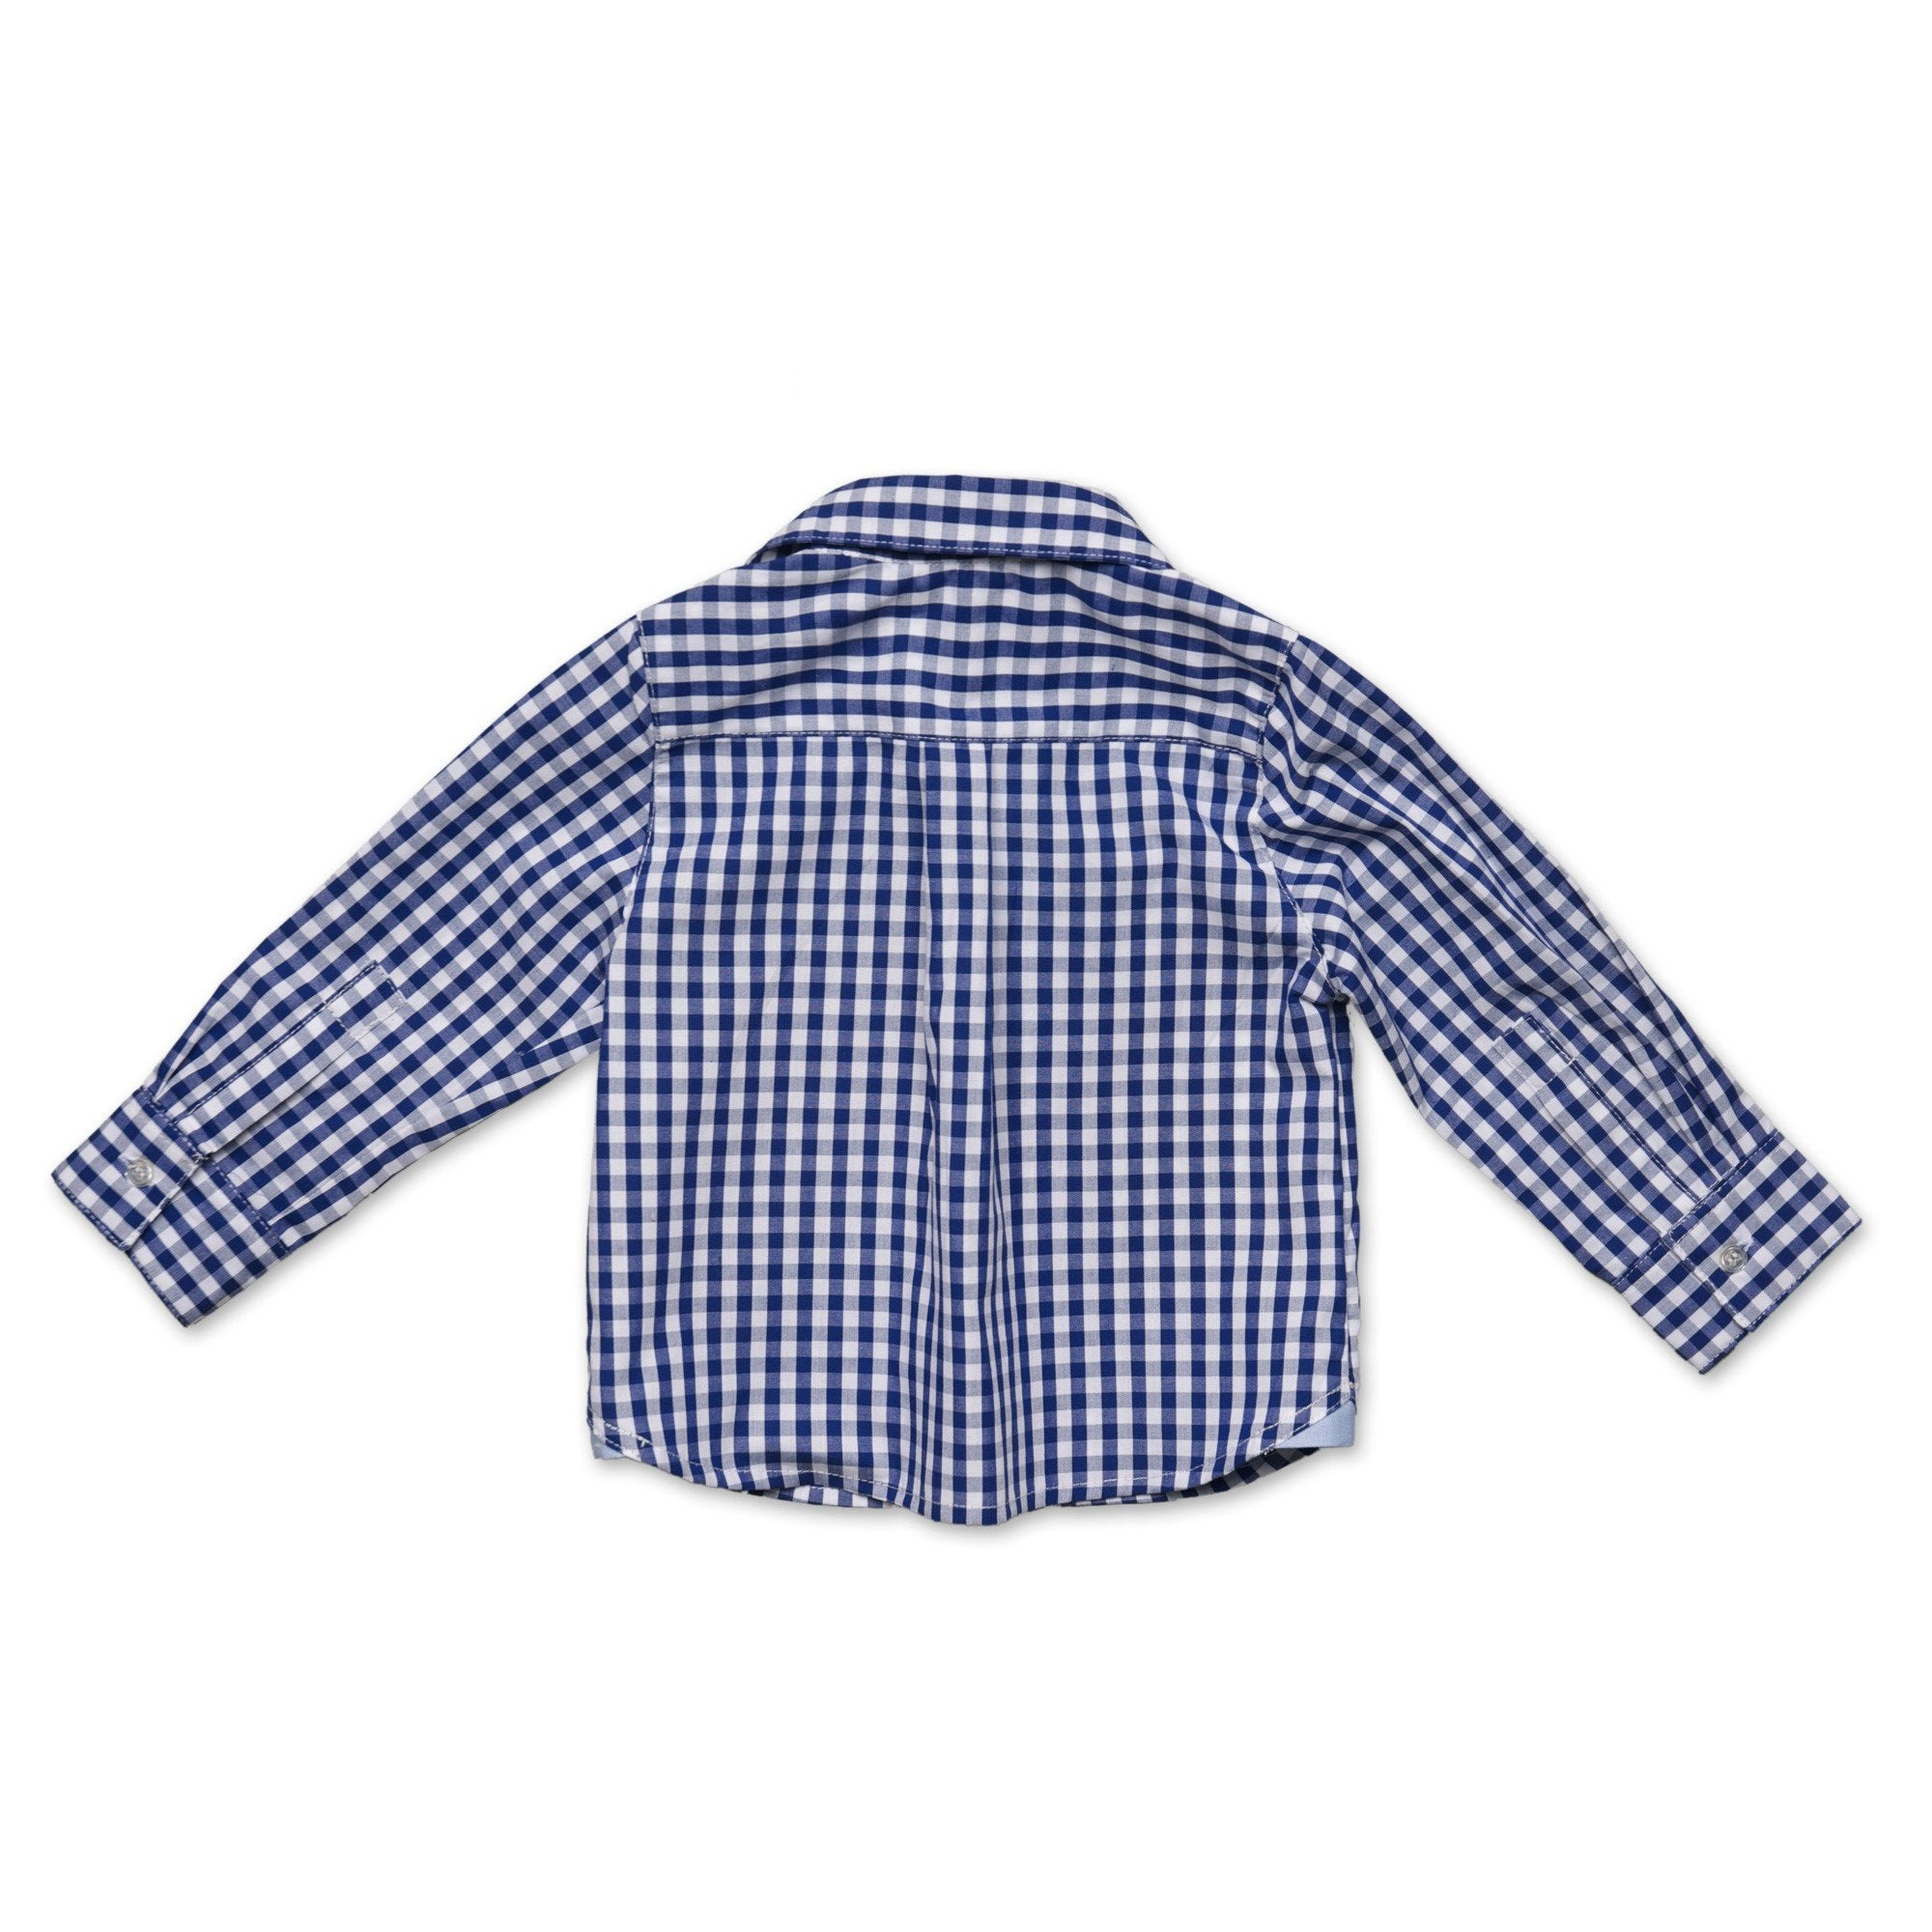 BOYS BLUE GINGHAM SHIRT WITH CONTRAST CUFF